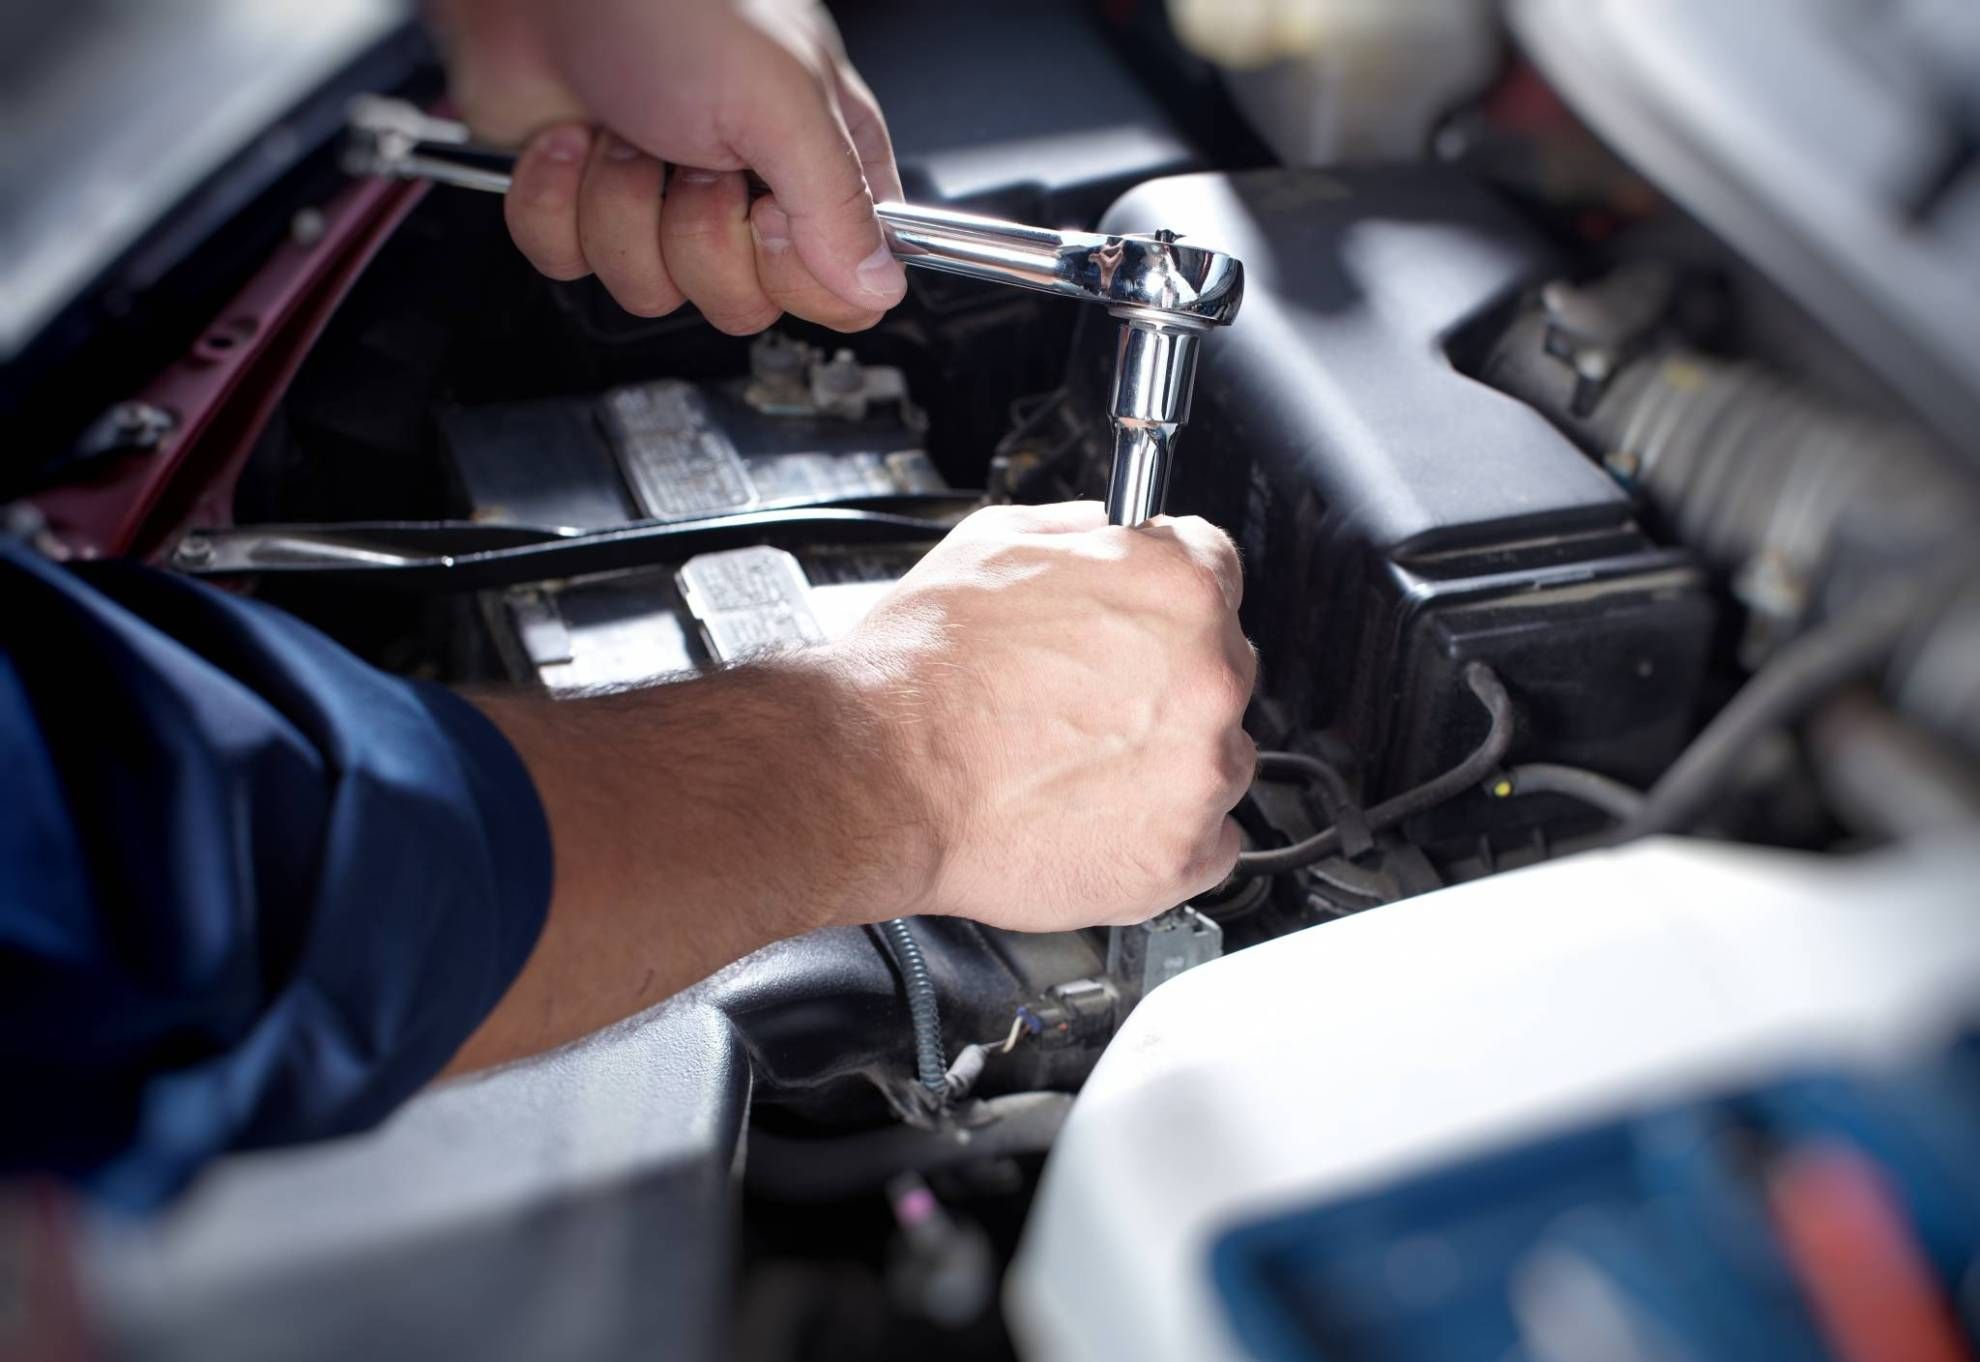 High Range Garage Is The No 1 Auto Repair Shop In Dubai We Offer The Best Auto Repair Services In Dubai The Best In 2020 Car Repair Service Auto Repair Auto Service